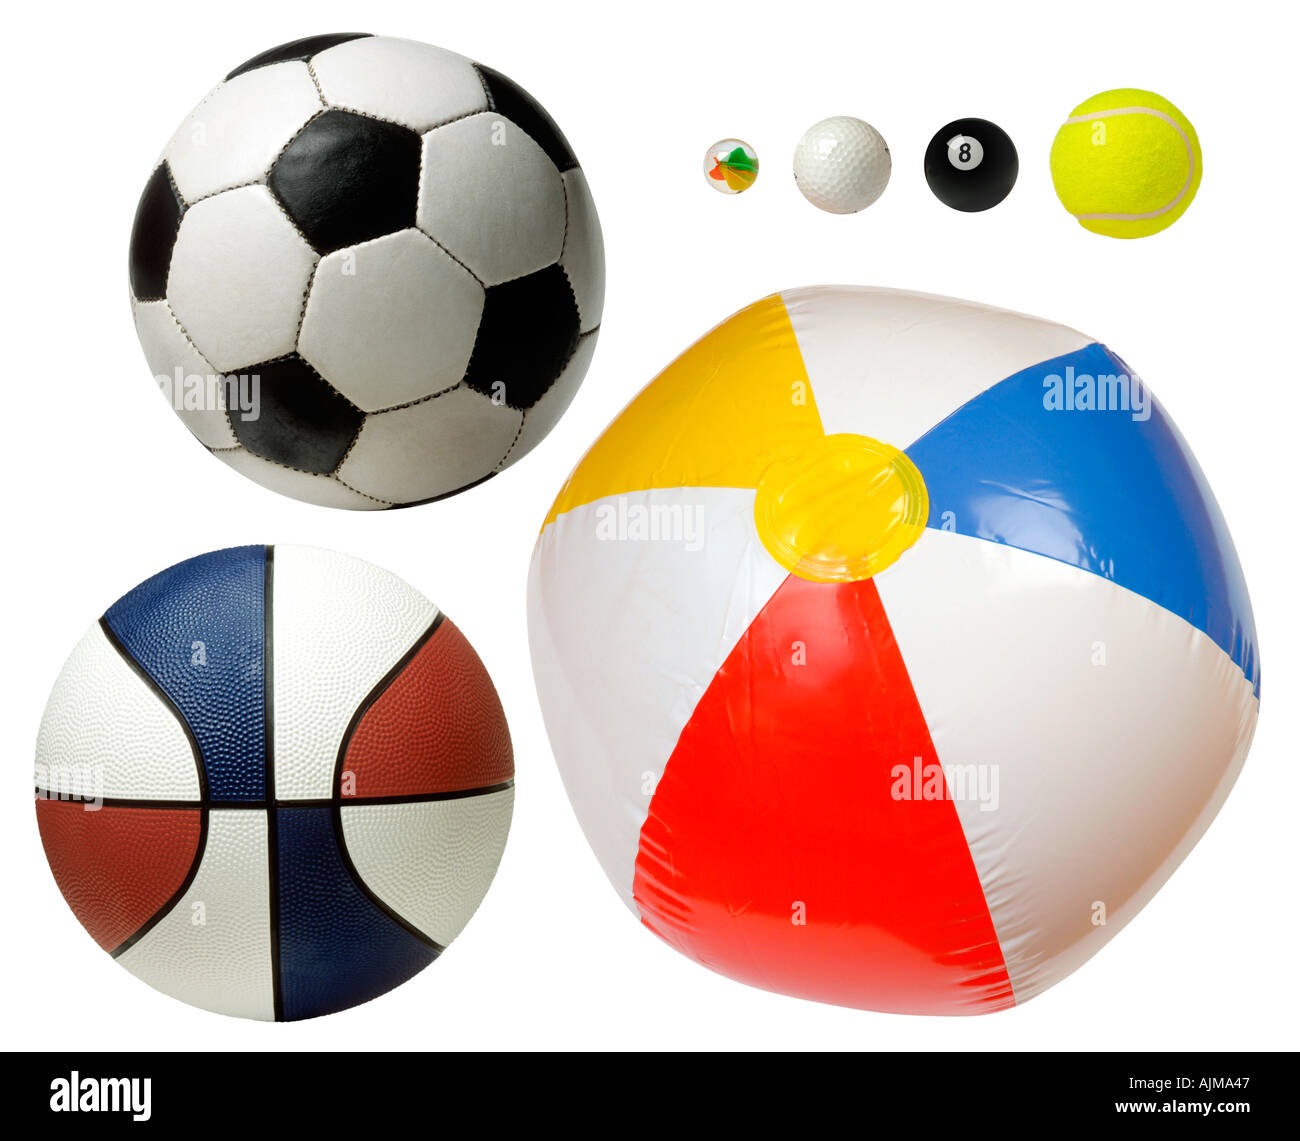 Different sized balls to represent the planets and solar system - Stock Image